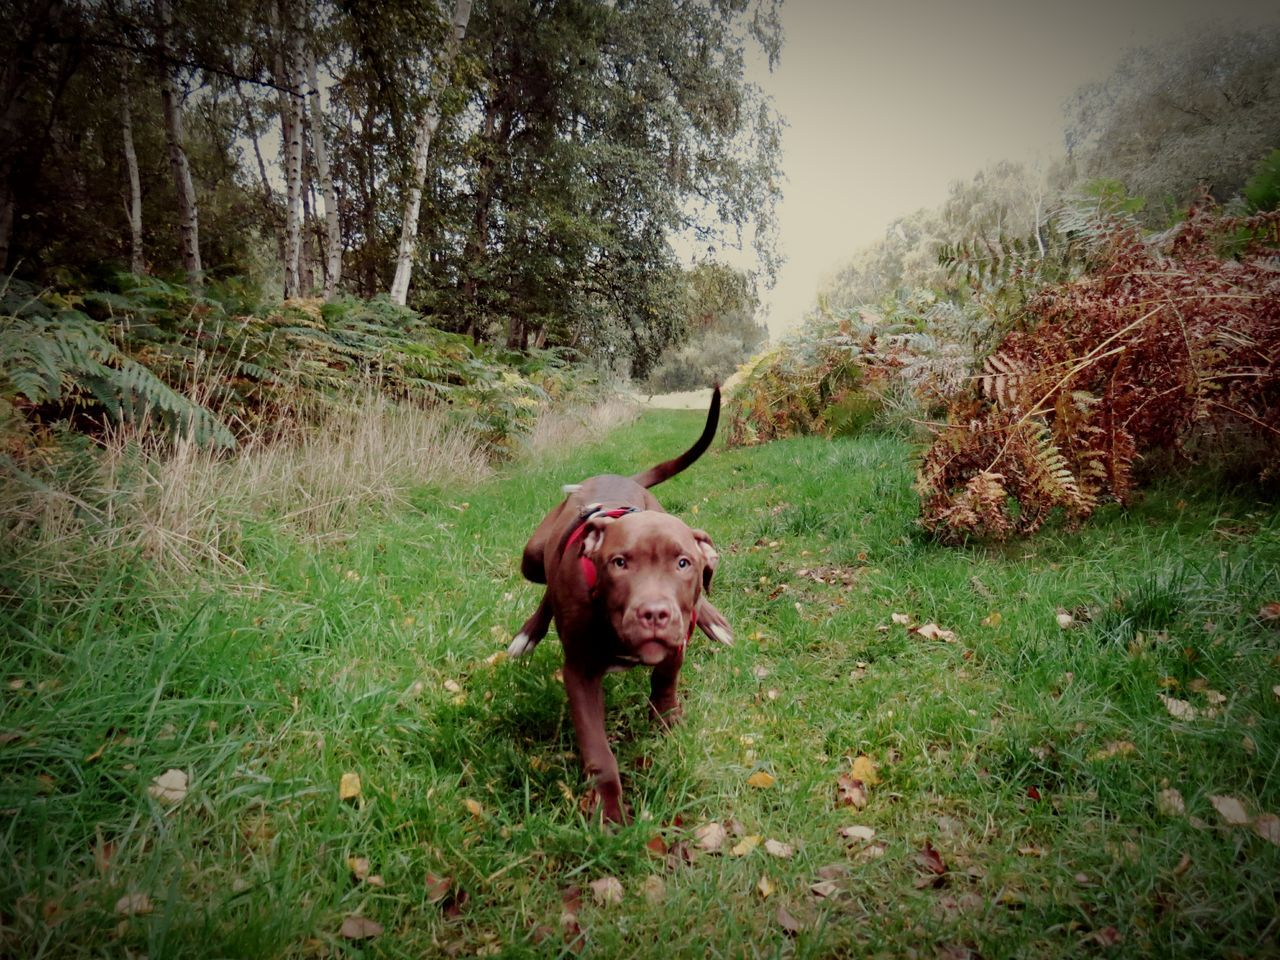 Tree Domestic Animals Animal Themes Mammal One Animal No People Nature Growth Livestock Grass Outdoors Day Forrest Staffy Stafflife Staffylovers Dog❤ Dog Love Dog Photography Dogwalk Running Dog EyeEmNewHere Live For The Story